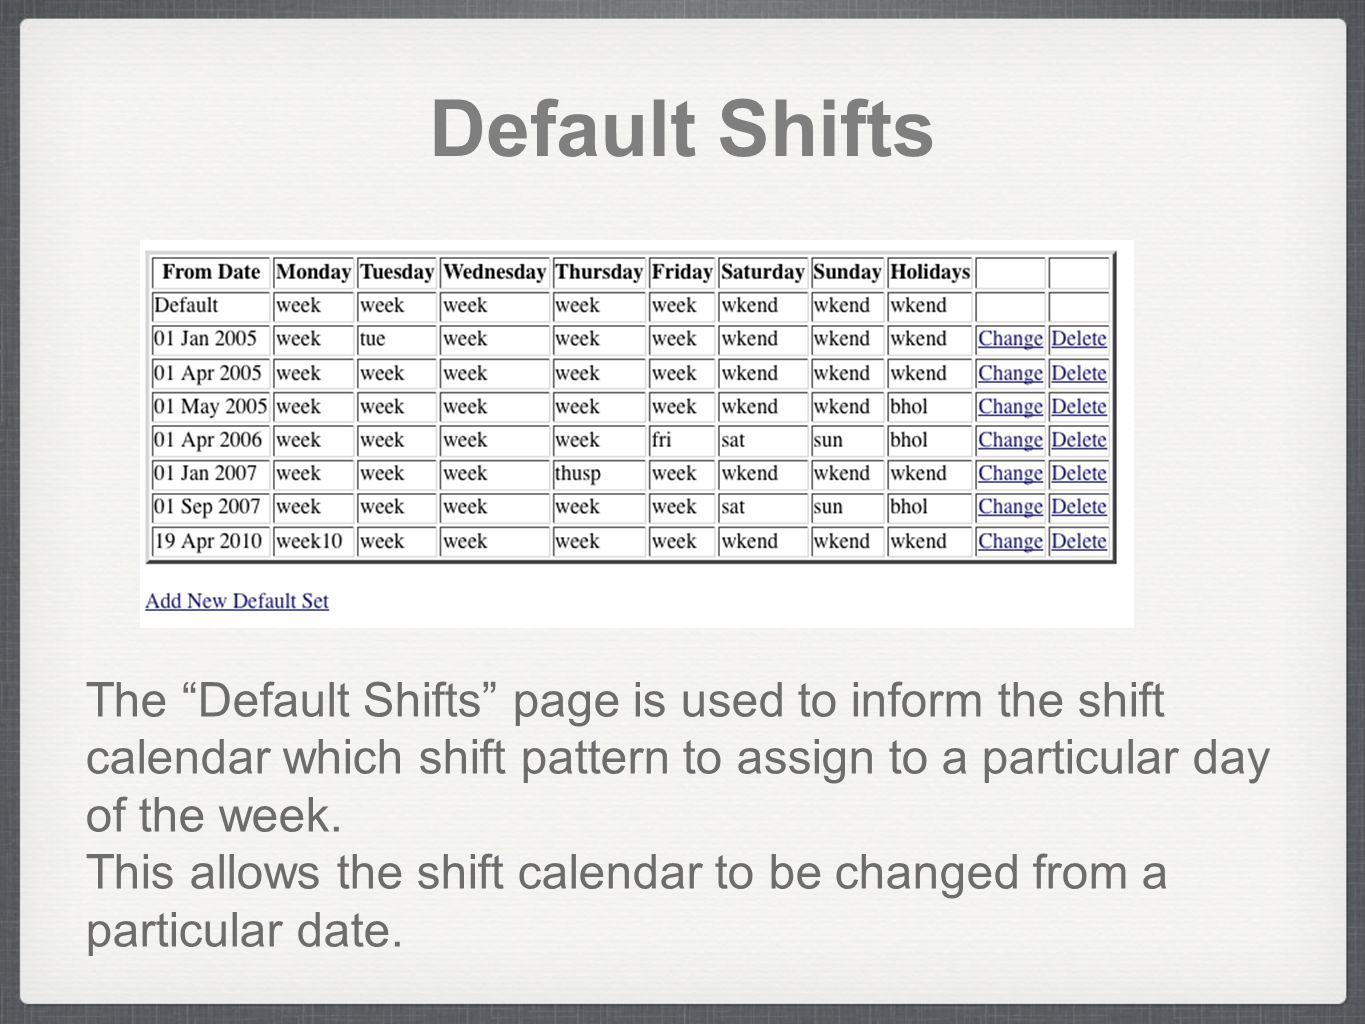 Default Shifts The Default Shifts page is used to inform the shift calendar which shift pattern to assign to a particular day of the week.